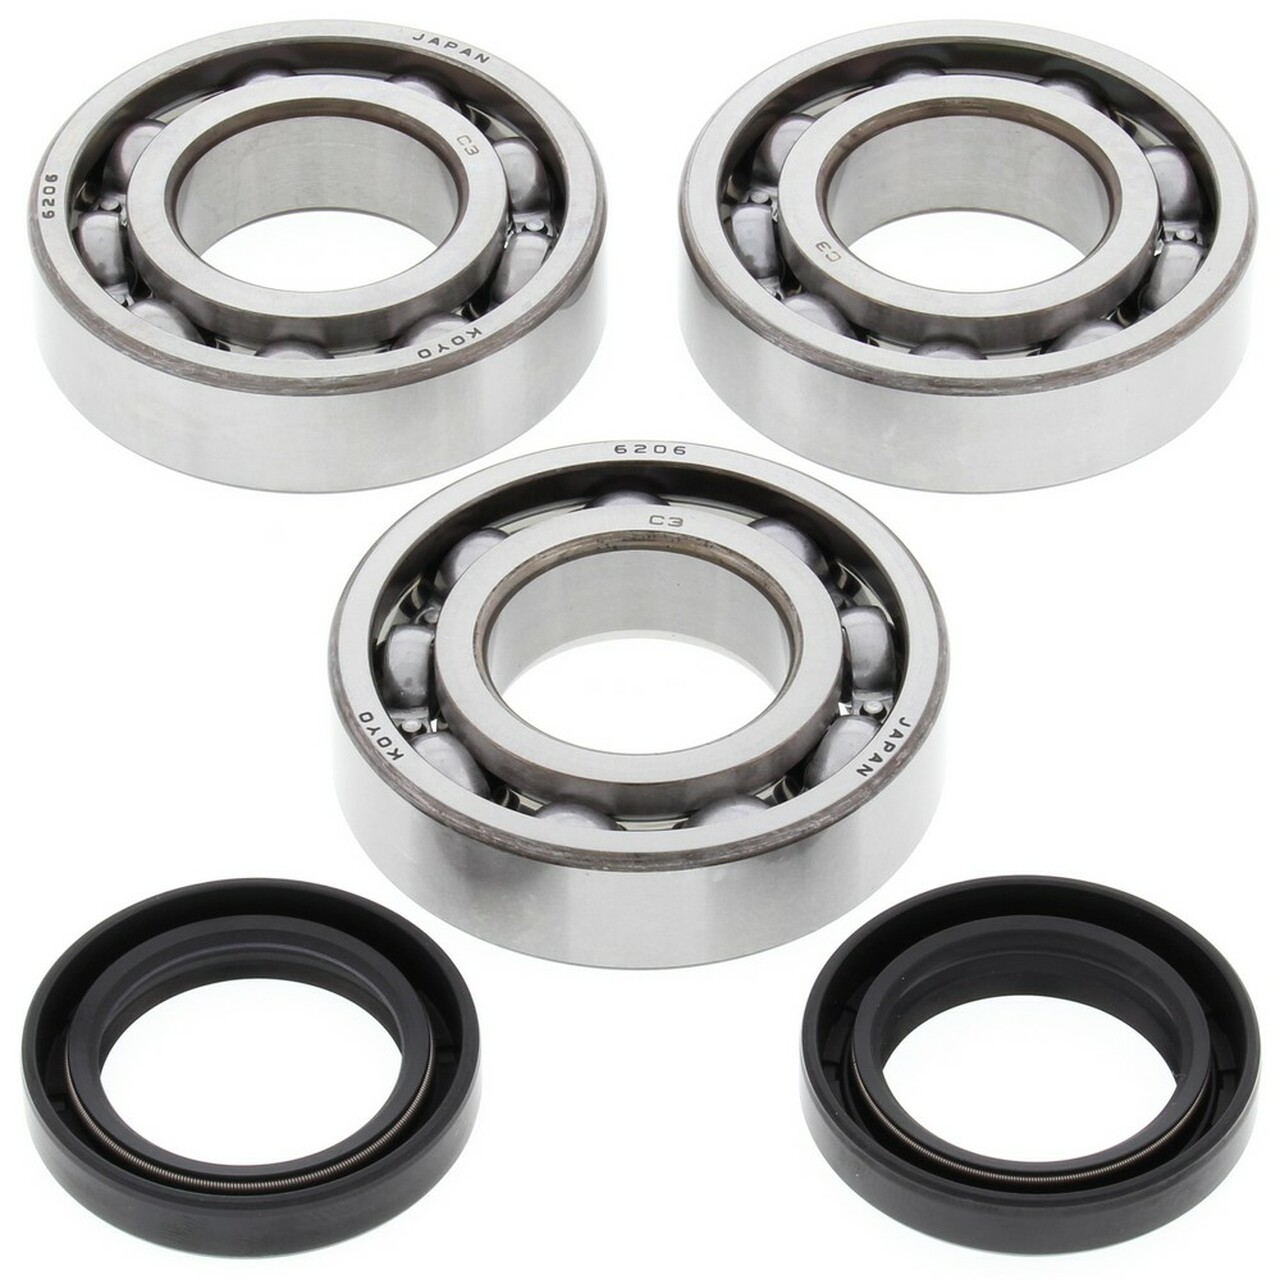 New All Balls Crank Bearing and Seal Kit 24-1092 for Polaris Trail Blazer 250 2